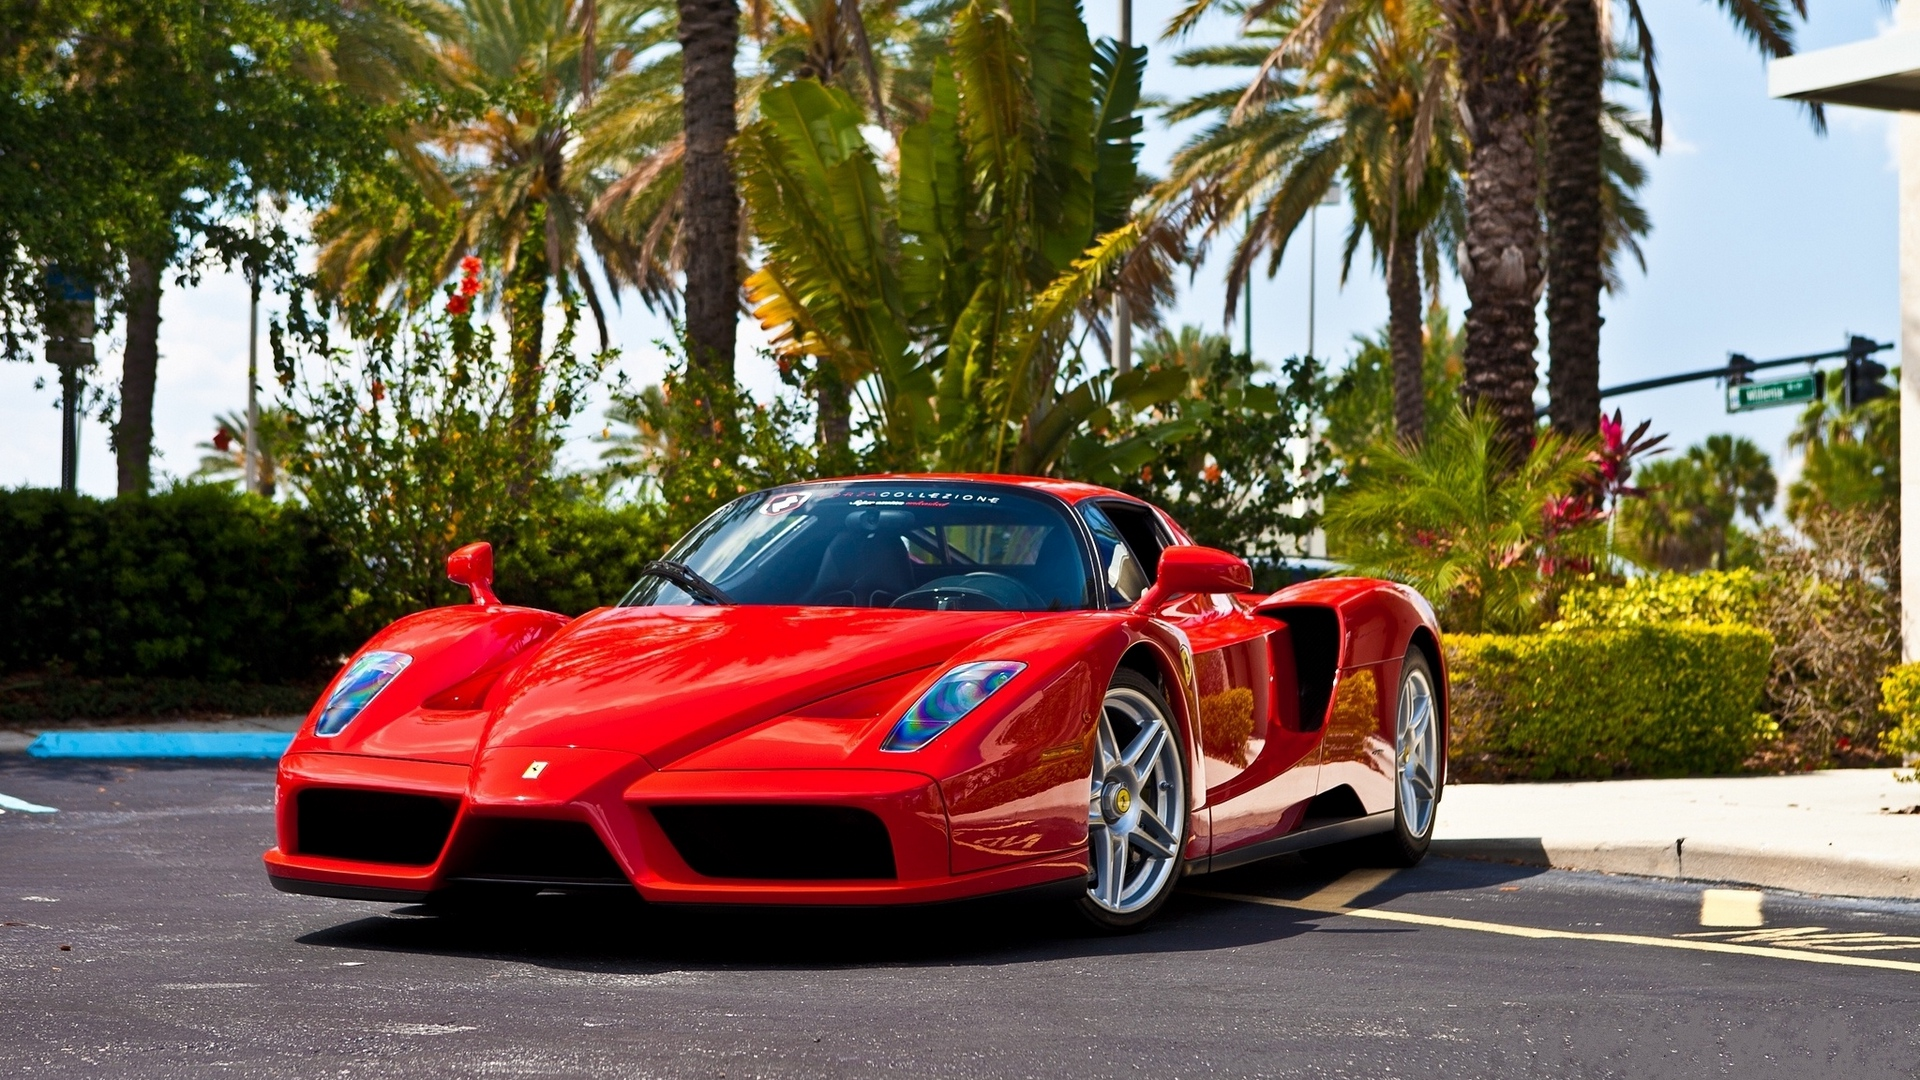 Ferrari Enzo Red Enzo Wallpapers Download Free Pictures And Images For Desktop